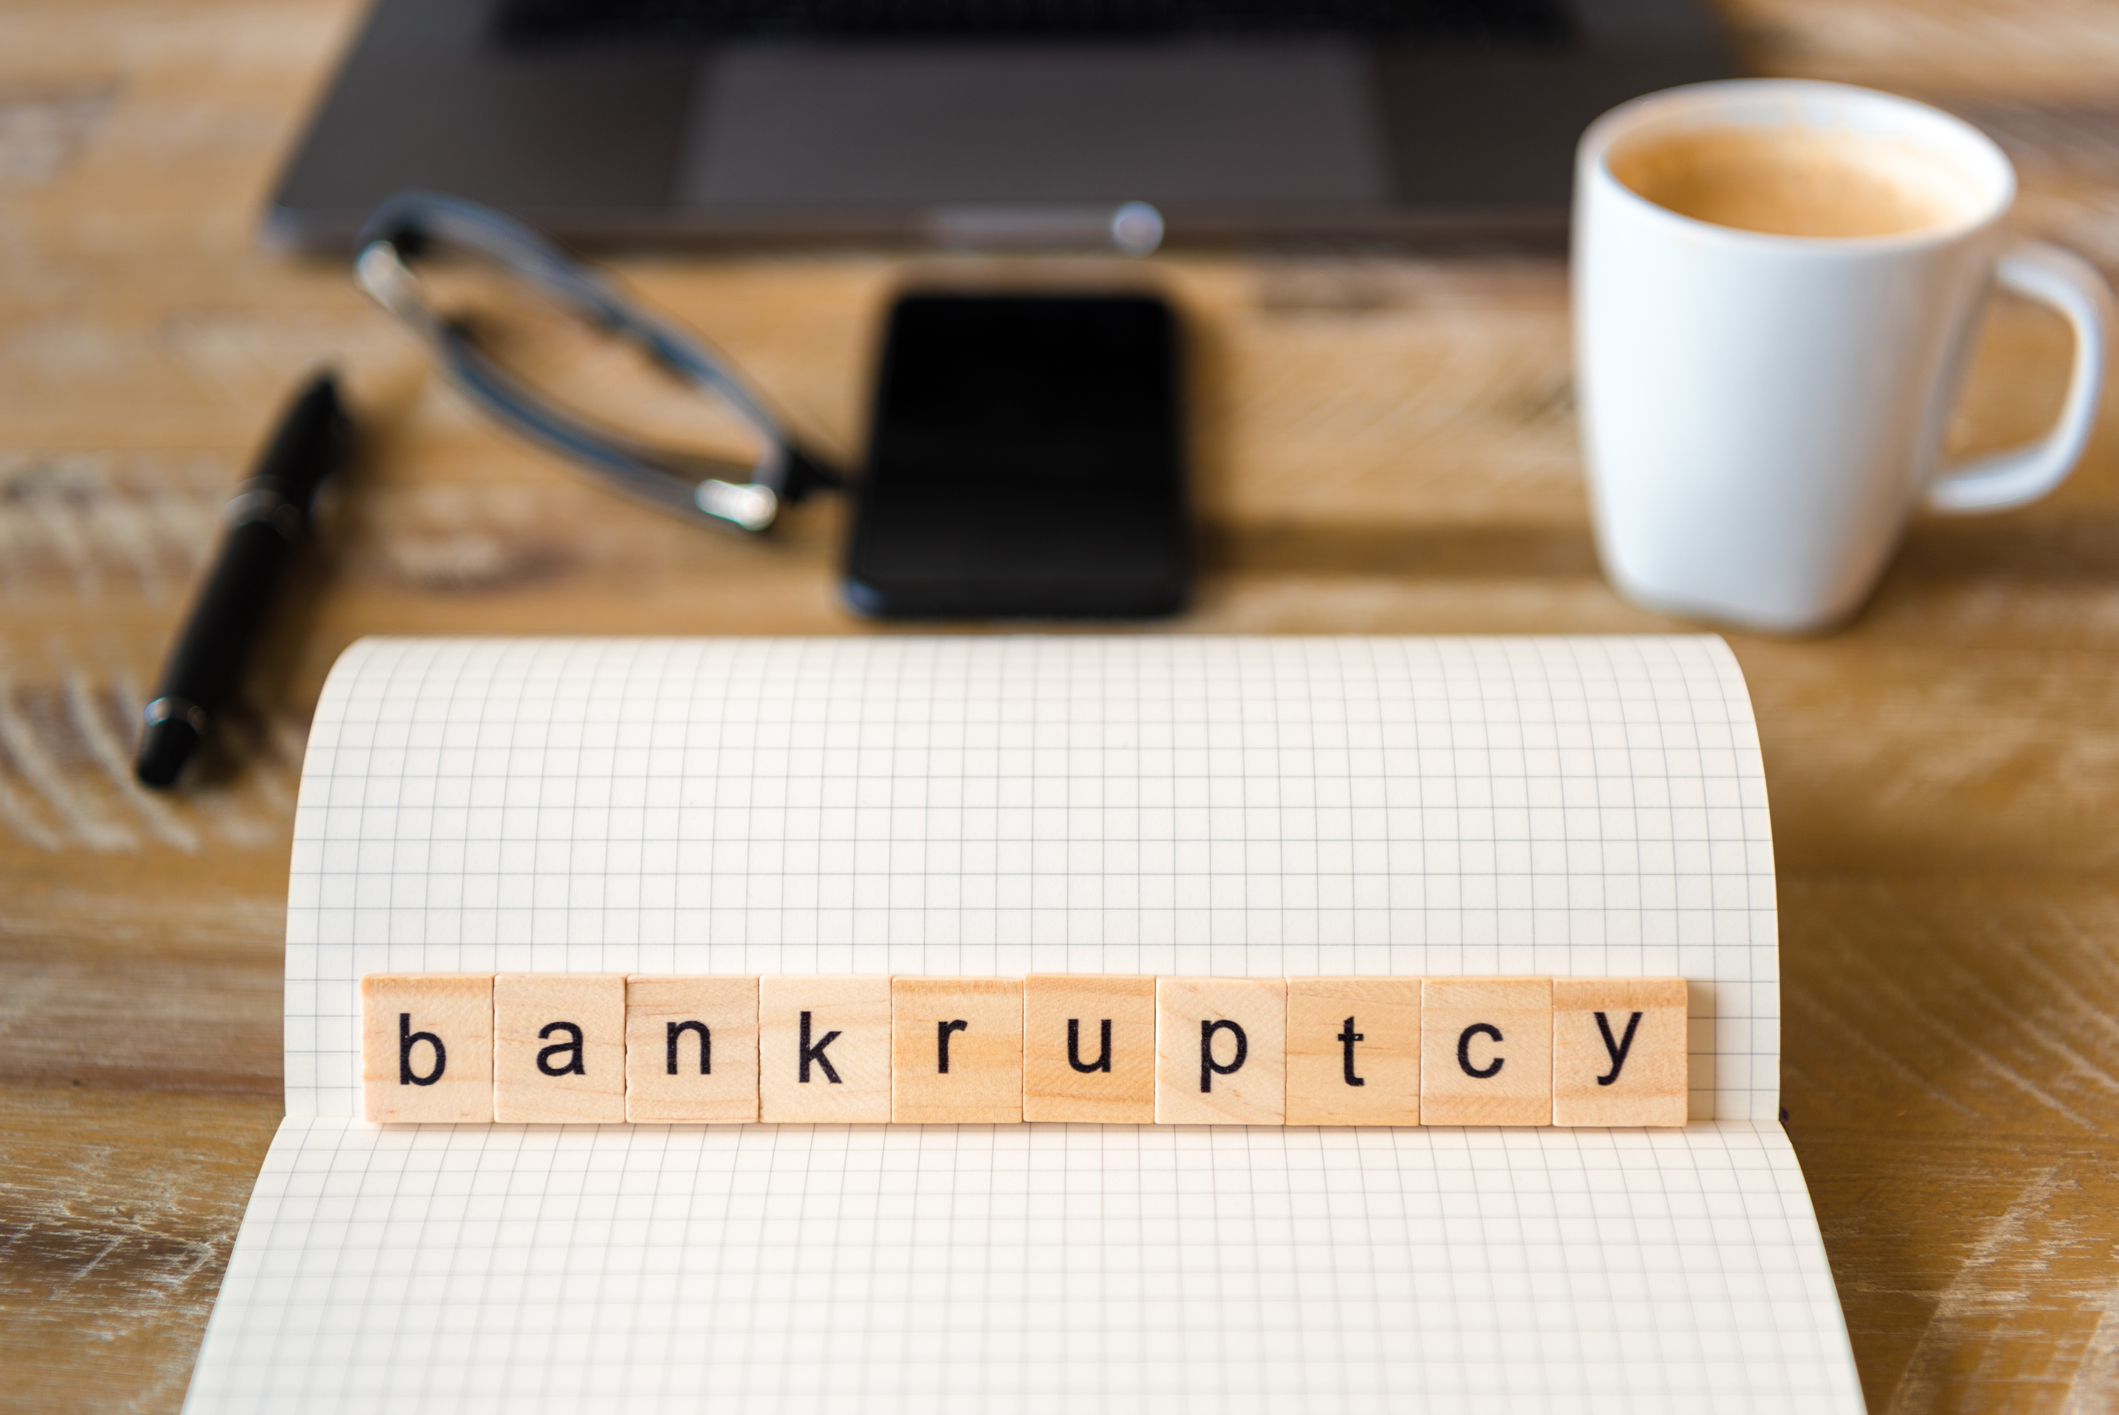 The word bankruptcy spelled out in tiles on a pad of paper